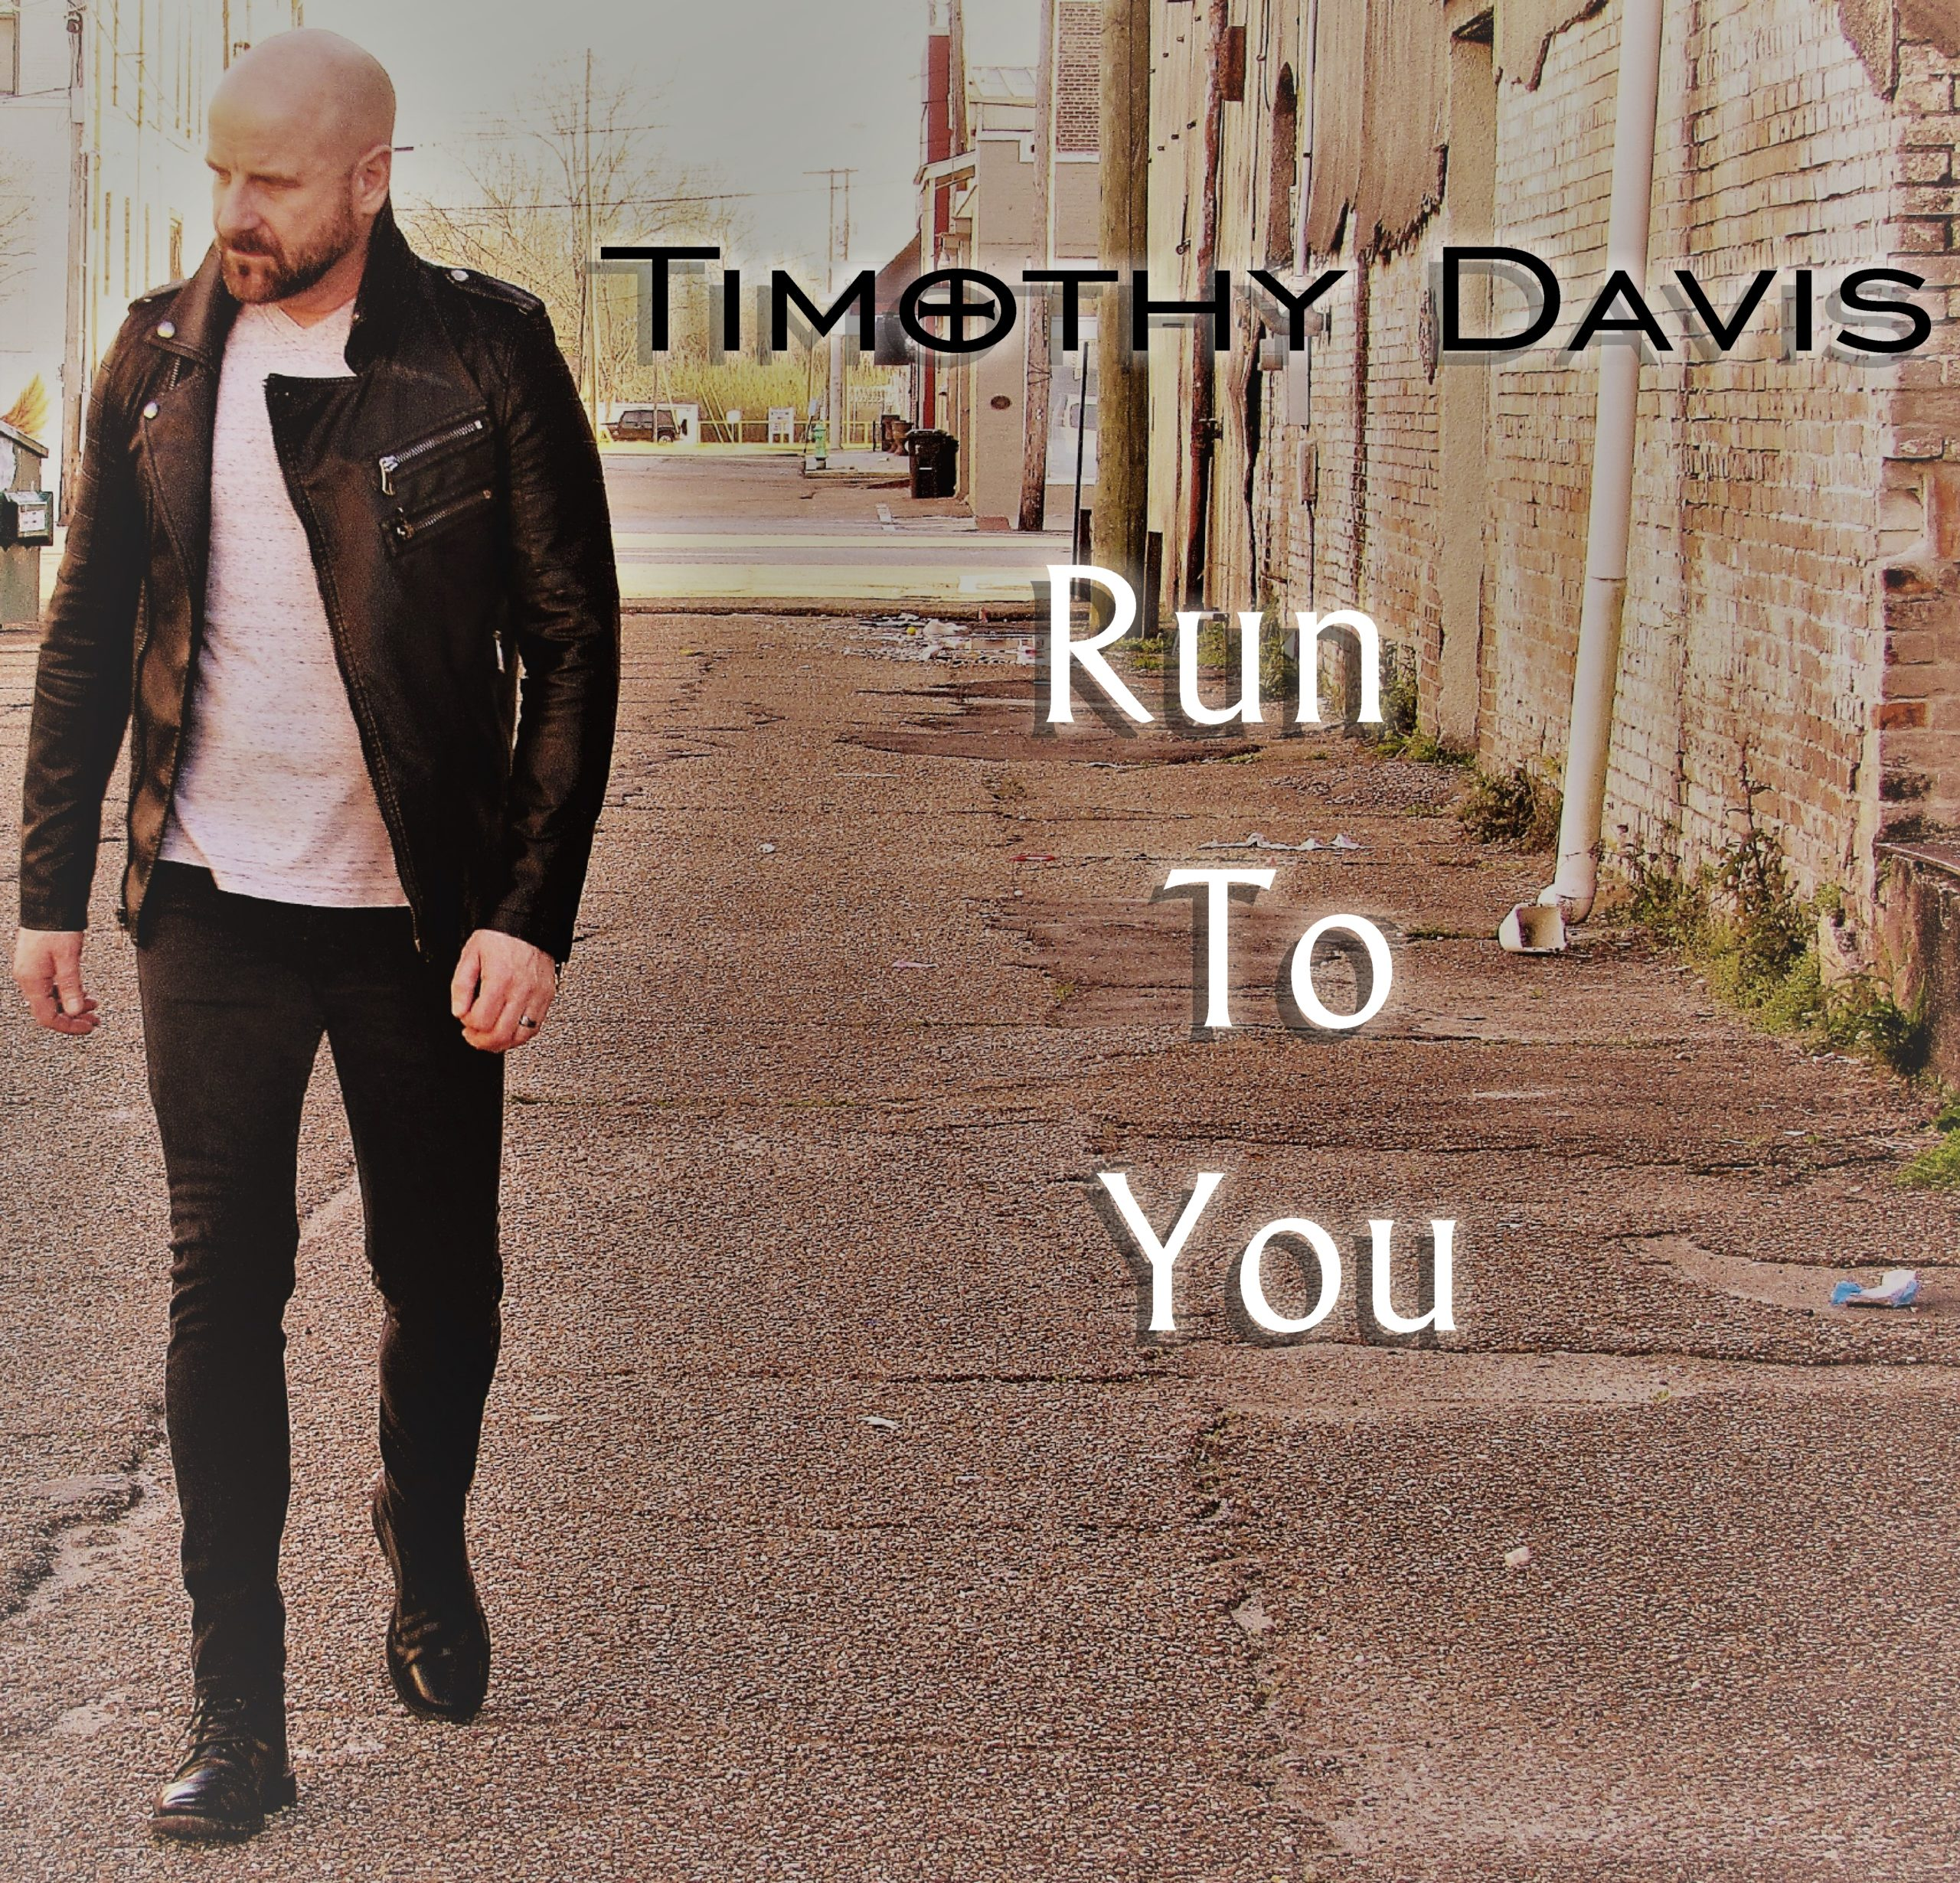 TIMOTHY DAVIS RELEASES NEW SINGLE